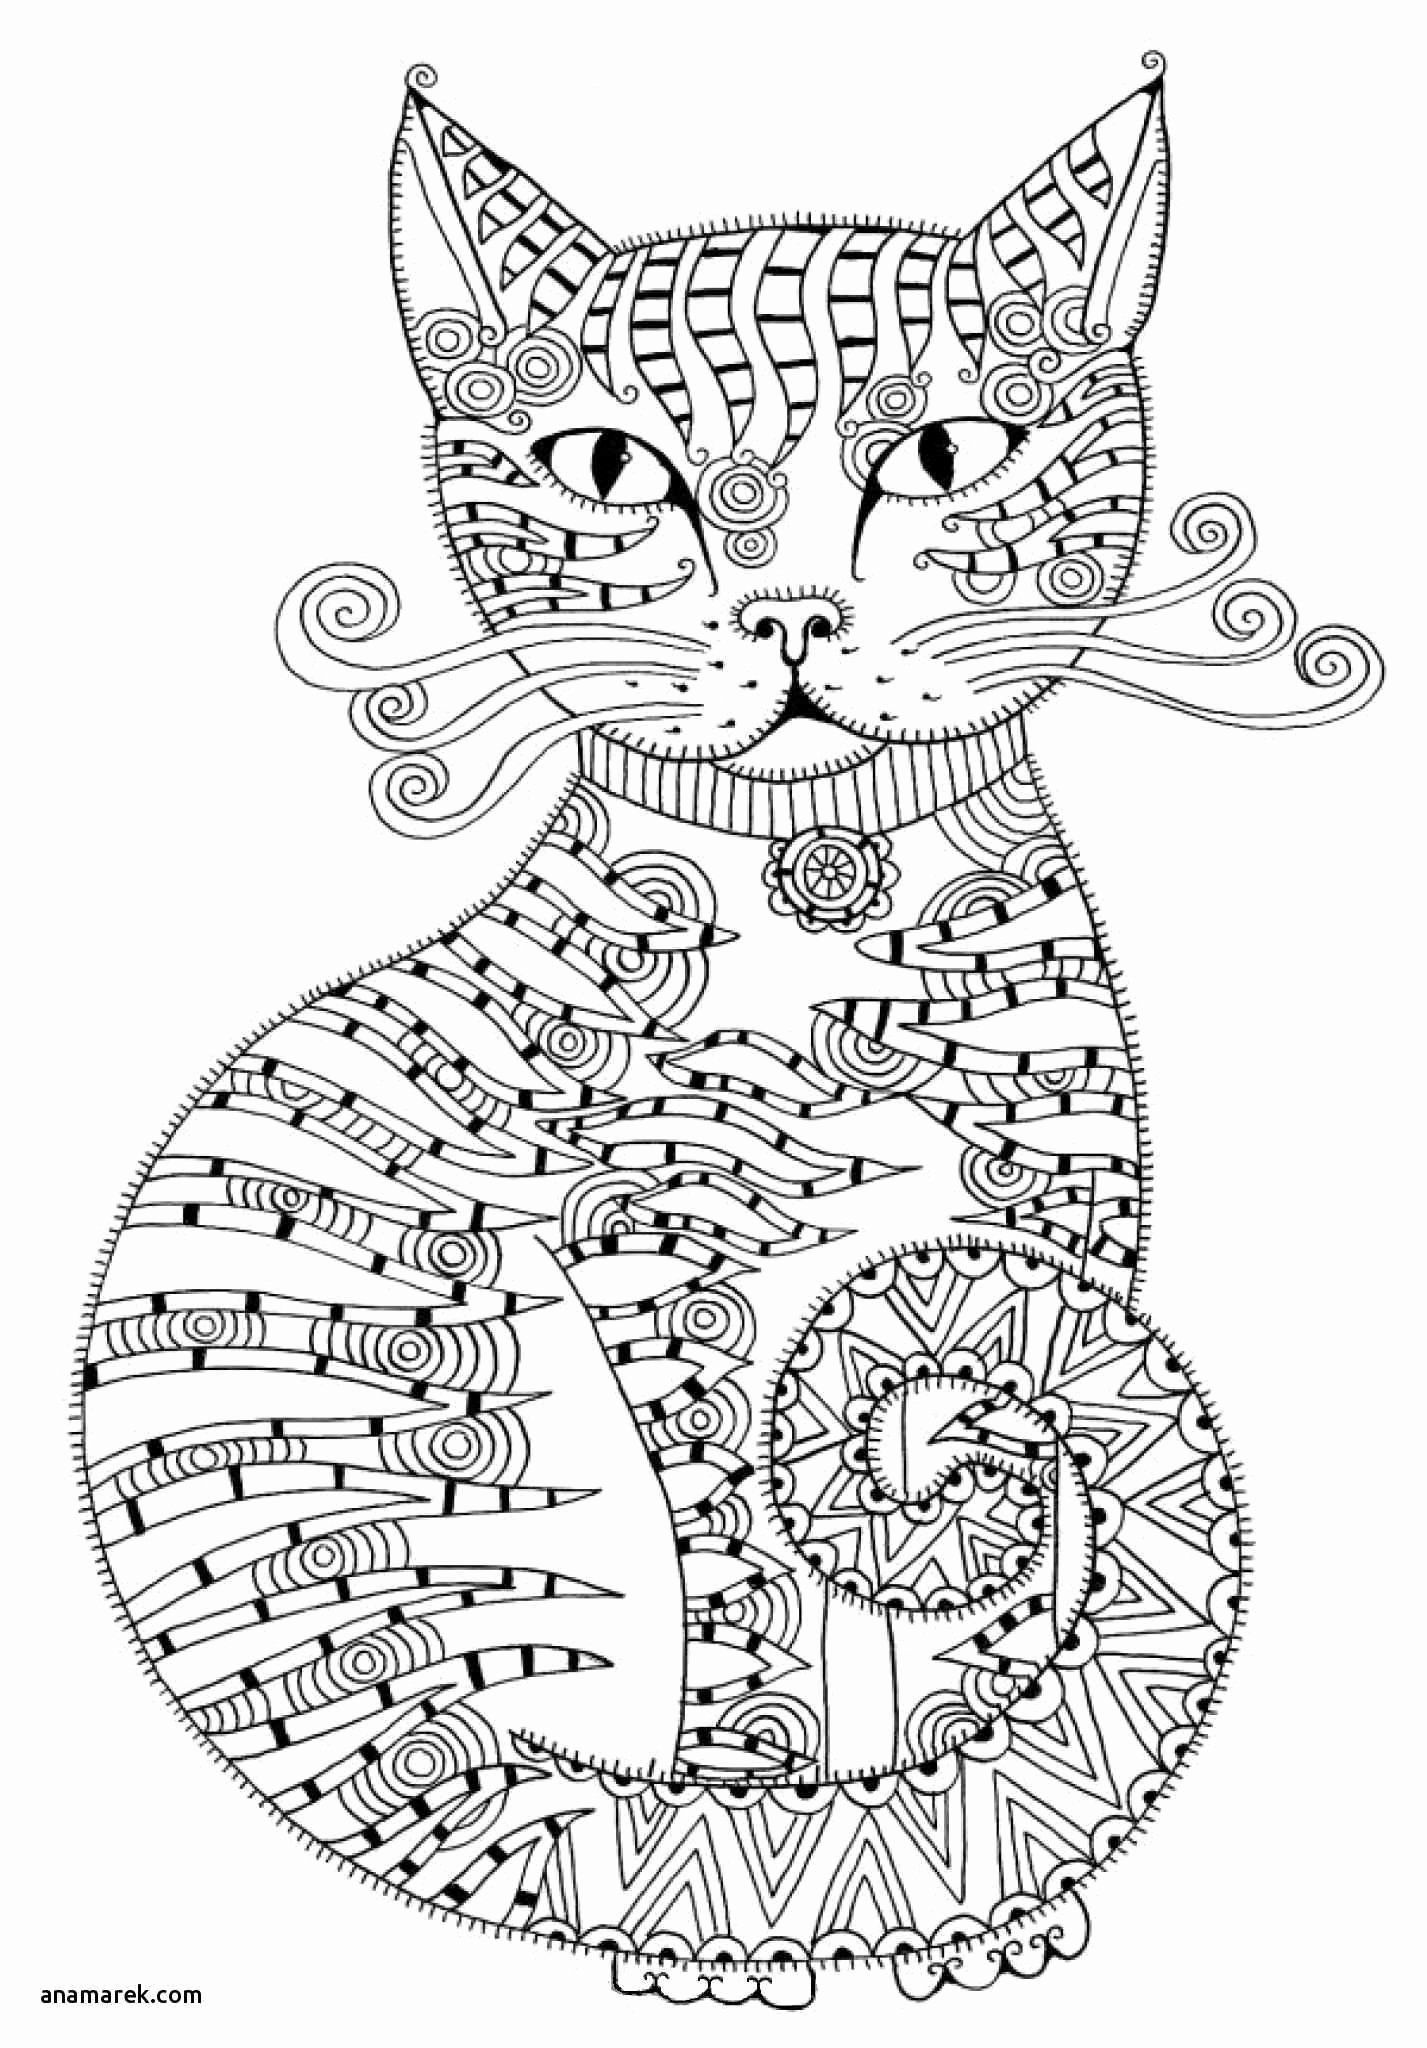 Cats Coloring Pages Free Printables New Awesome Free Coloring Pages Kitty Cat Coloring Book Cat Coloring Page Animal Coloring Pages